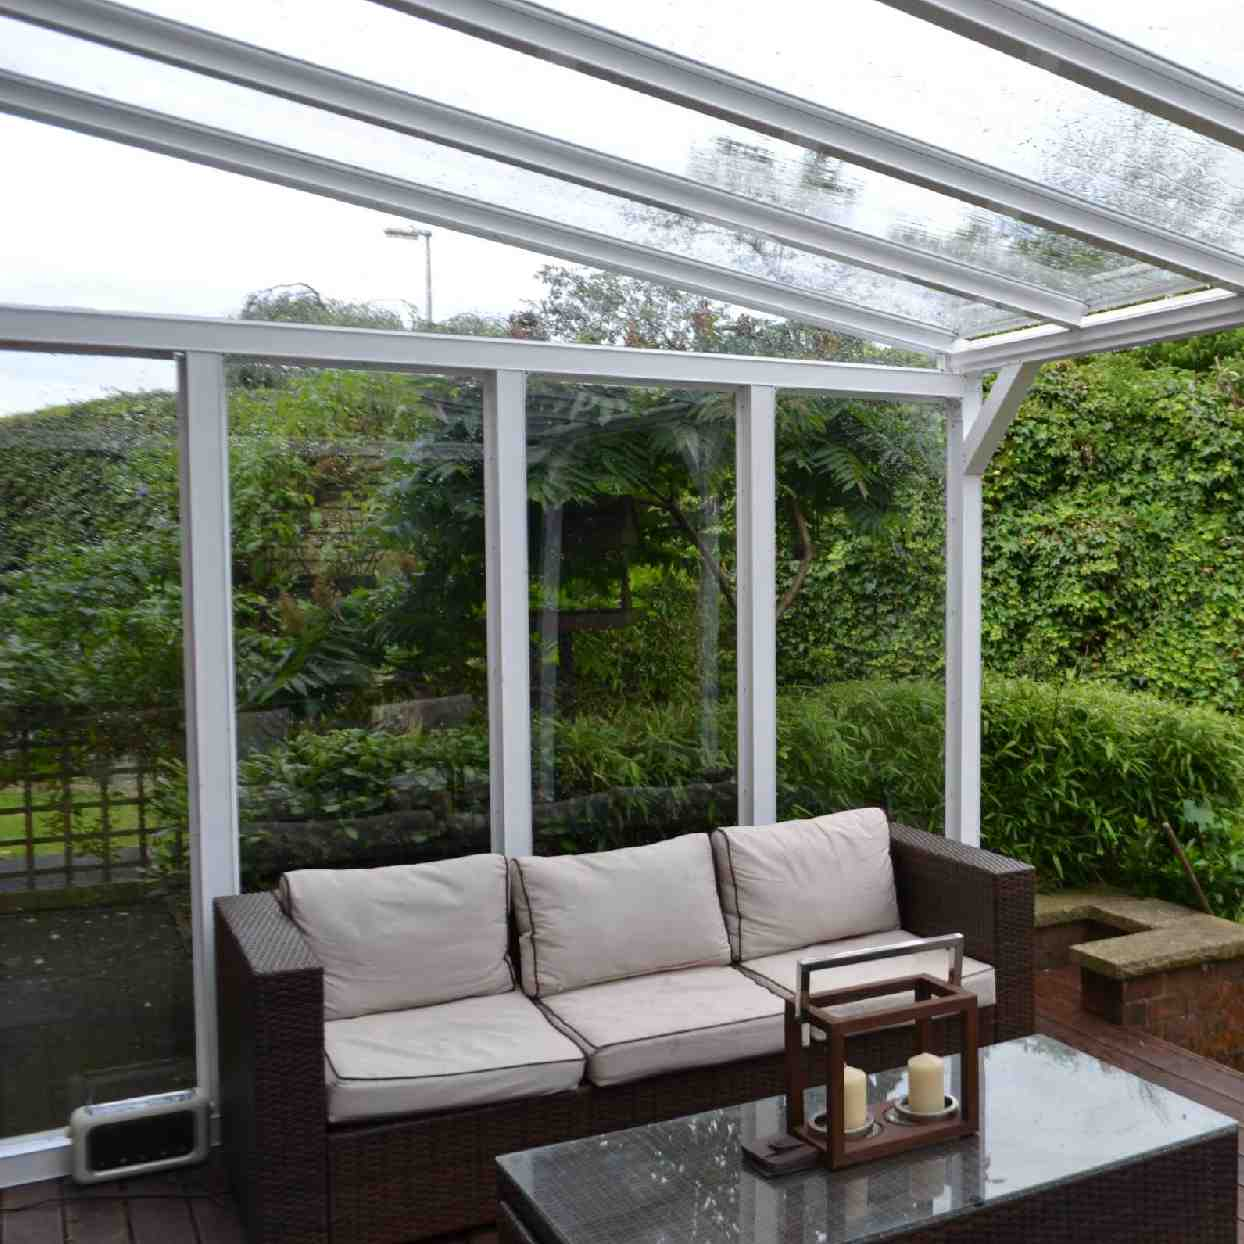 Buy Omega Verandah with 6mm Glass Clear Plate Polycarbonate Glazing - 7.7m (W) x 3.5m (P), (4) Supporting Posts online today